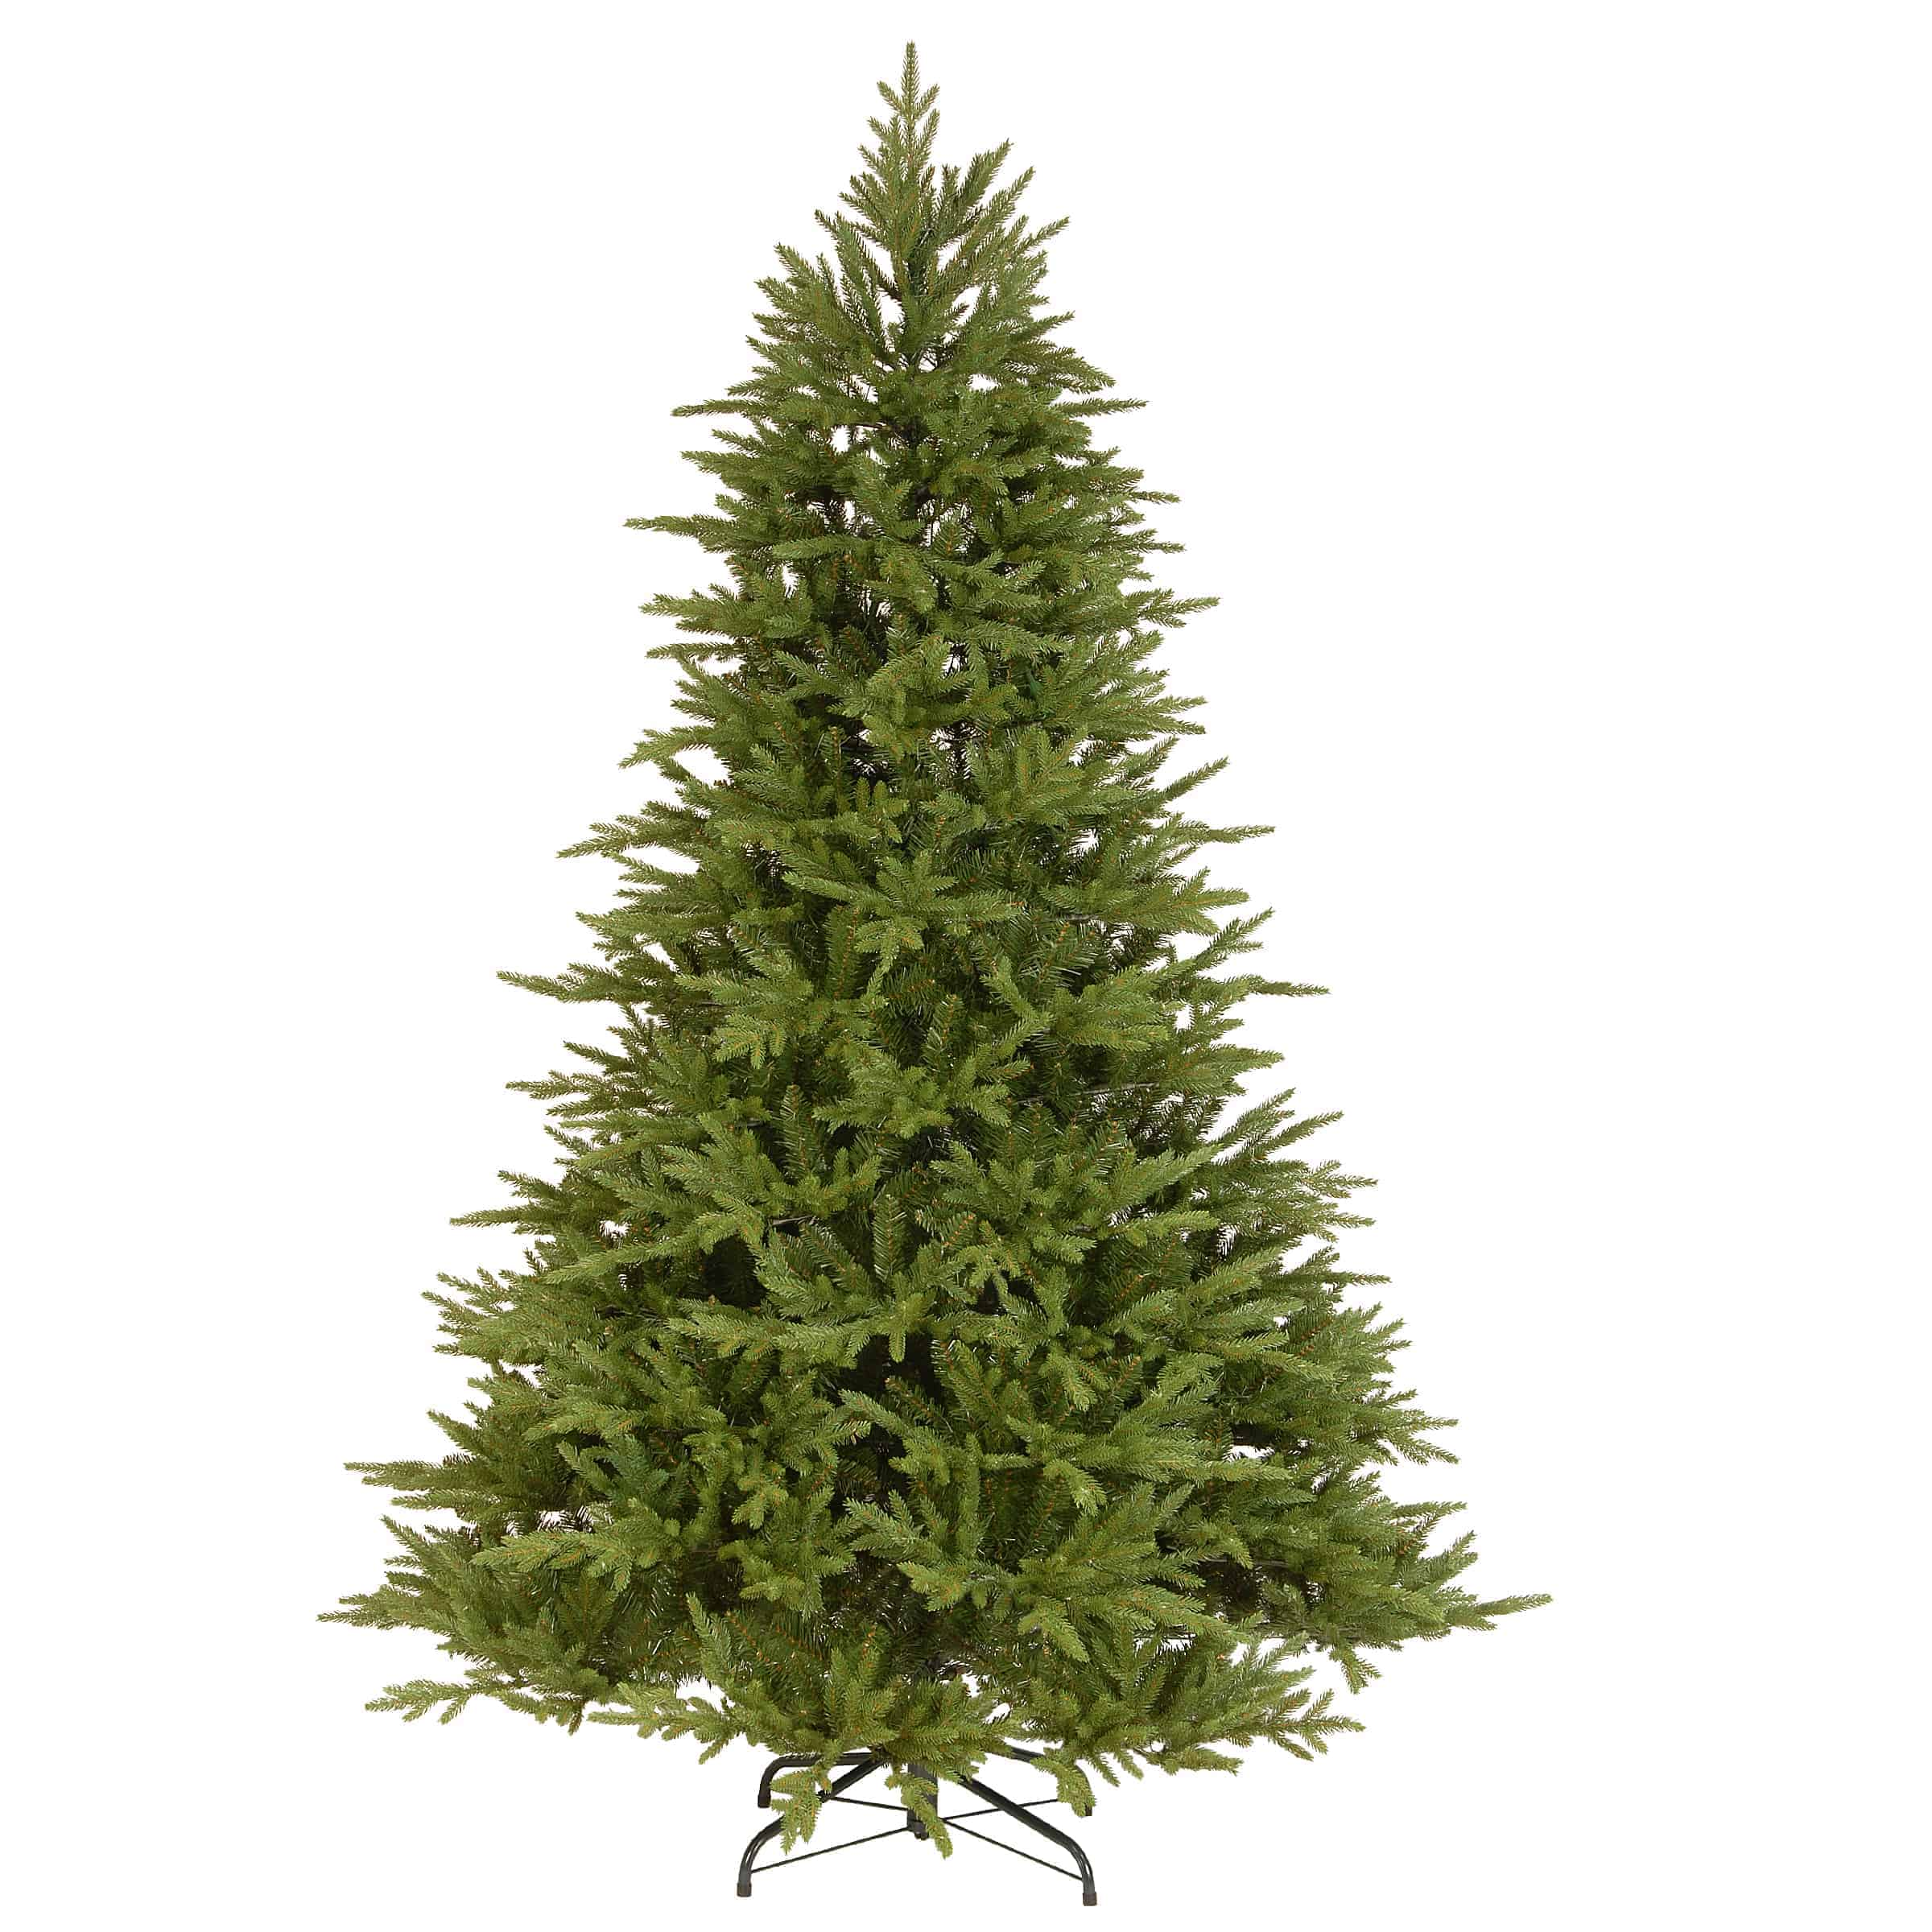 Bedminster Spruce Artificial Christmas Tree - Artificial Christmas Trees for Sale Dublin Ireland